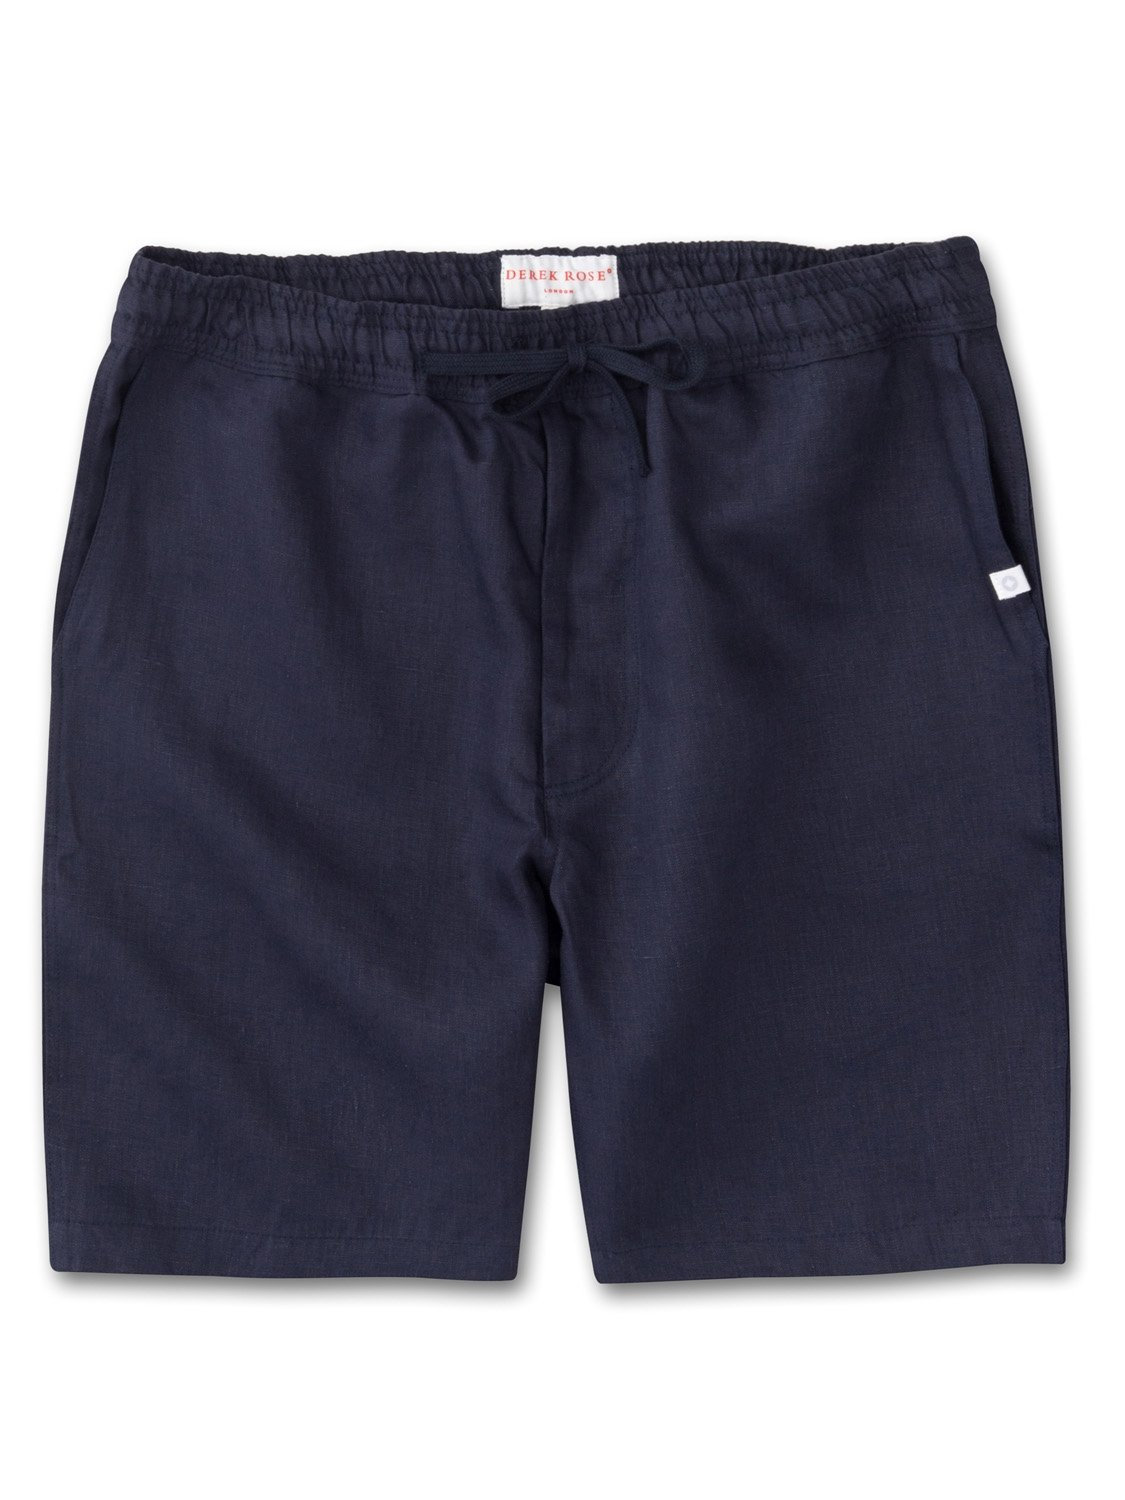 Men's Linen Shorts Sydney Linen Navy